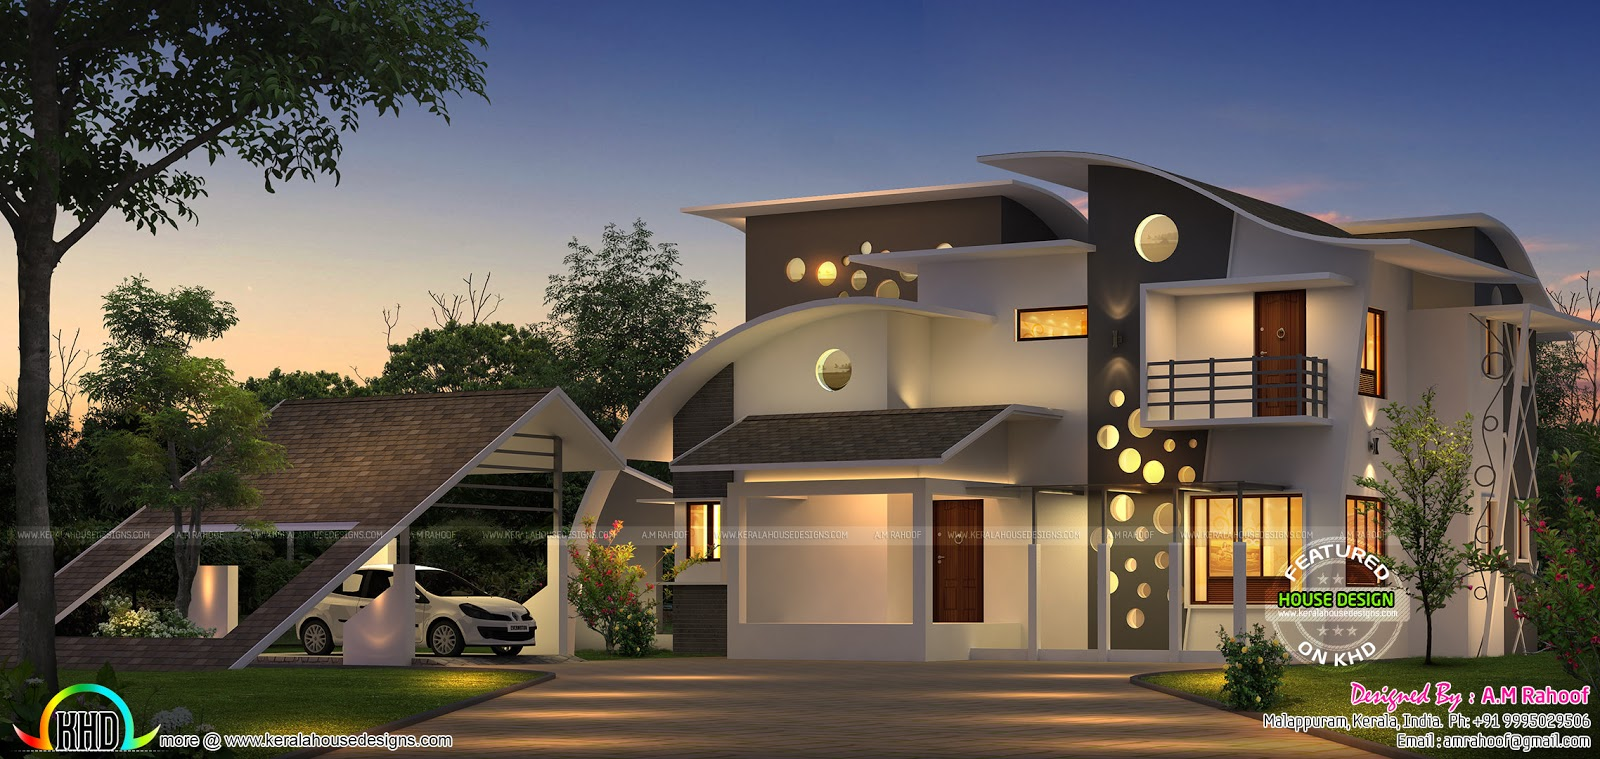 Unique house with cantilever balcony - Home Design Simple